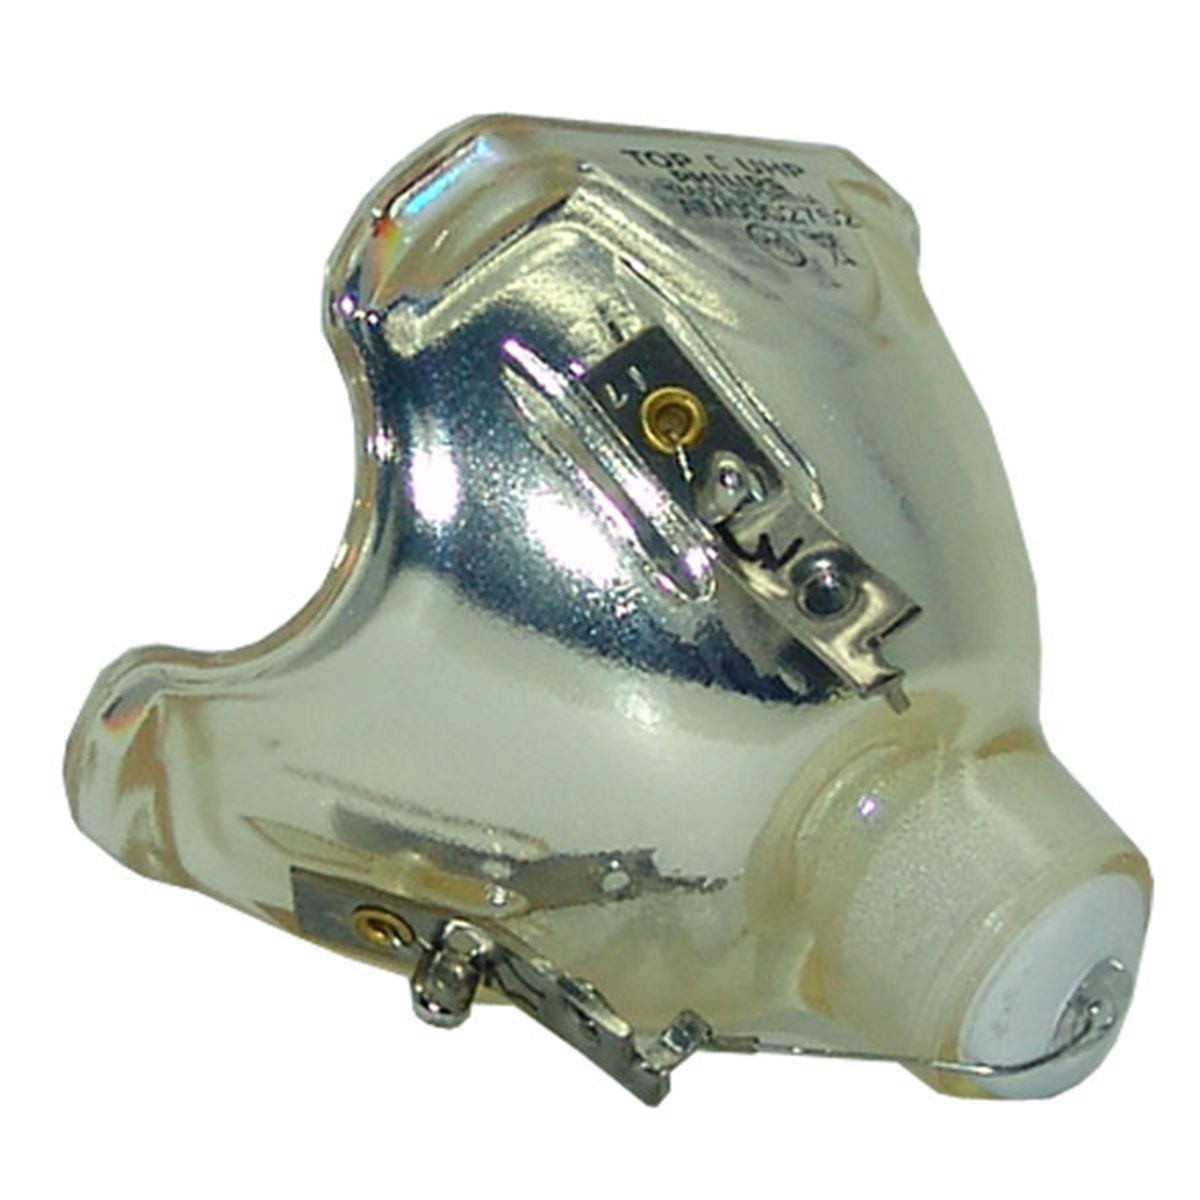 Original Philips Projector Lamp Replacement with Housing for Hitachi CP-X205 - image 2 of 5